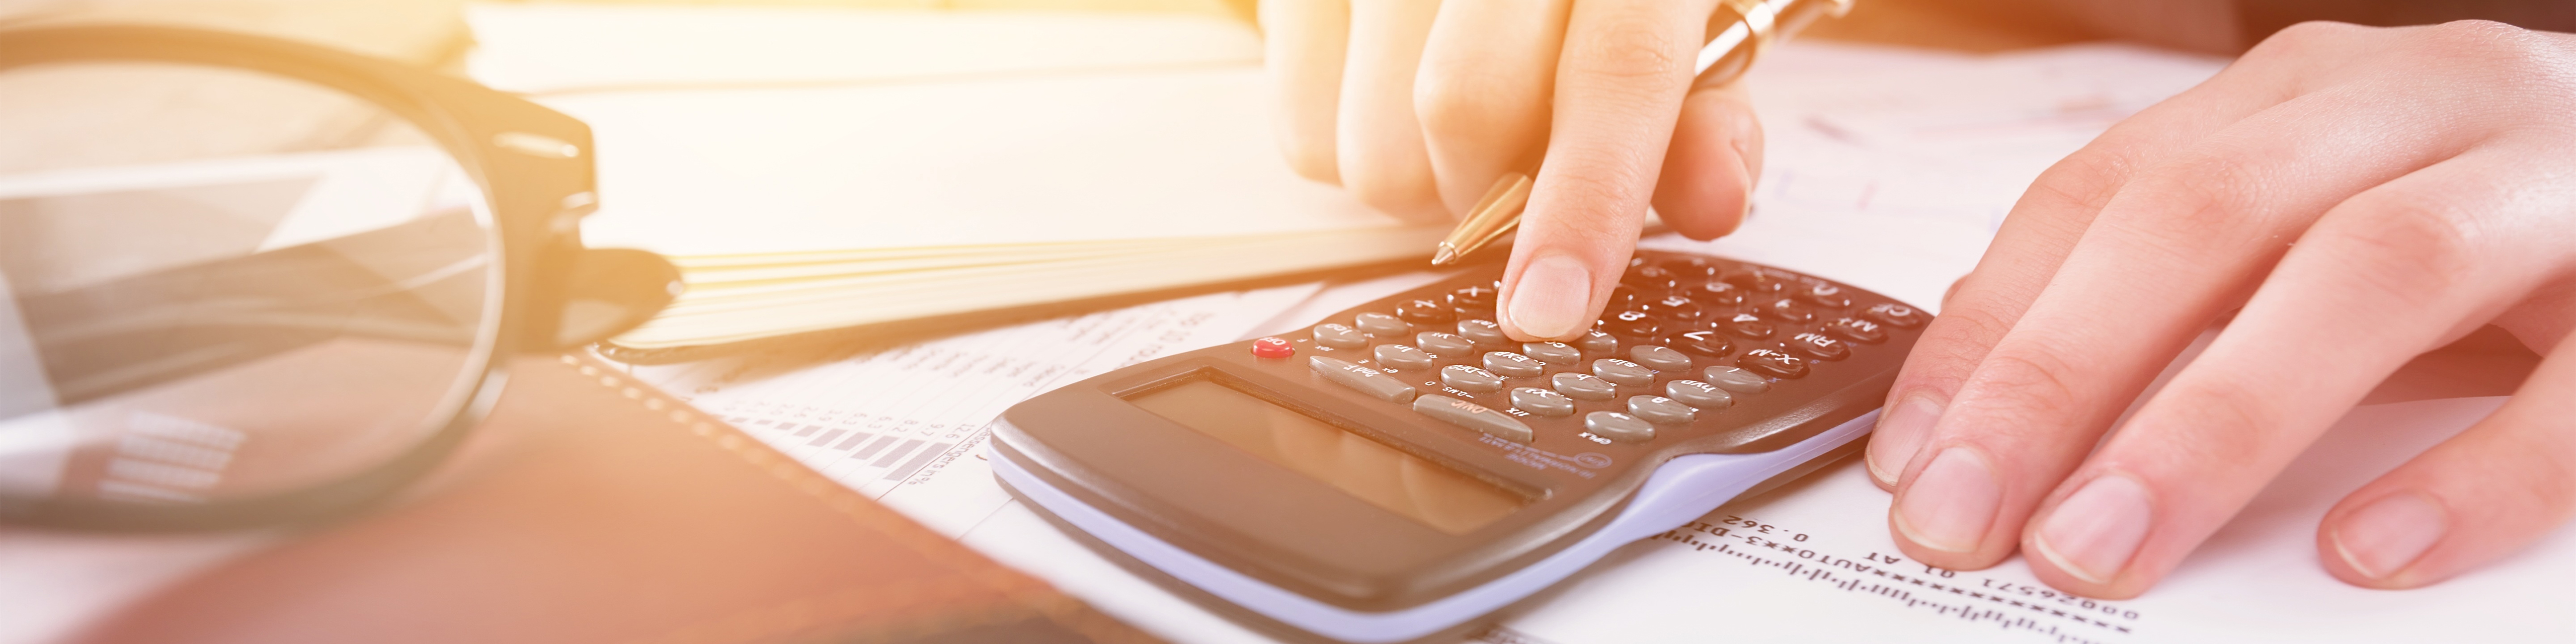 pair of hands using a calculator, which is sitting atop a pile of paperwork